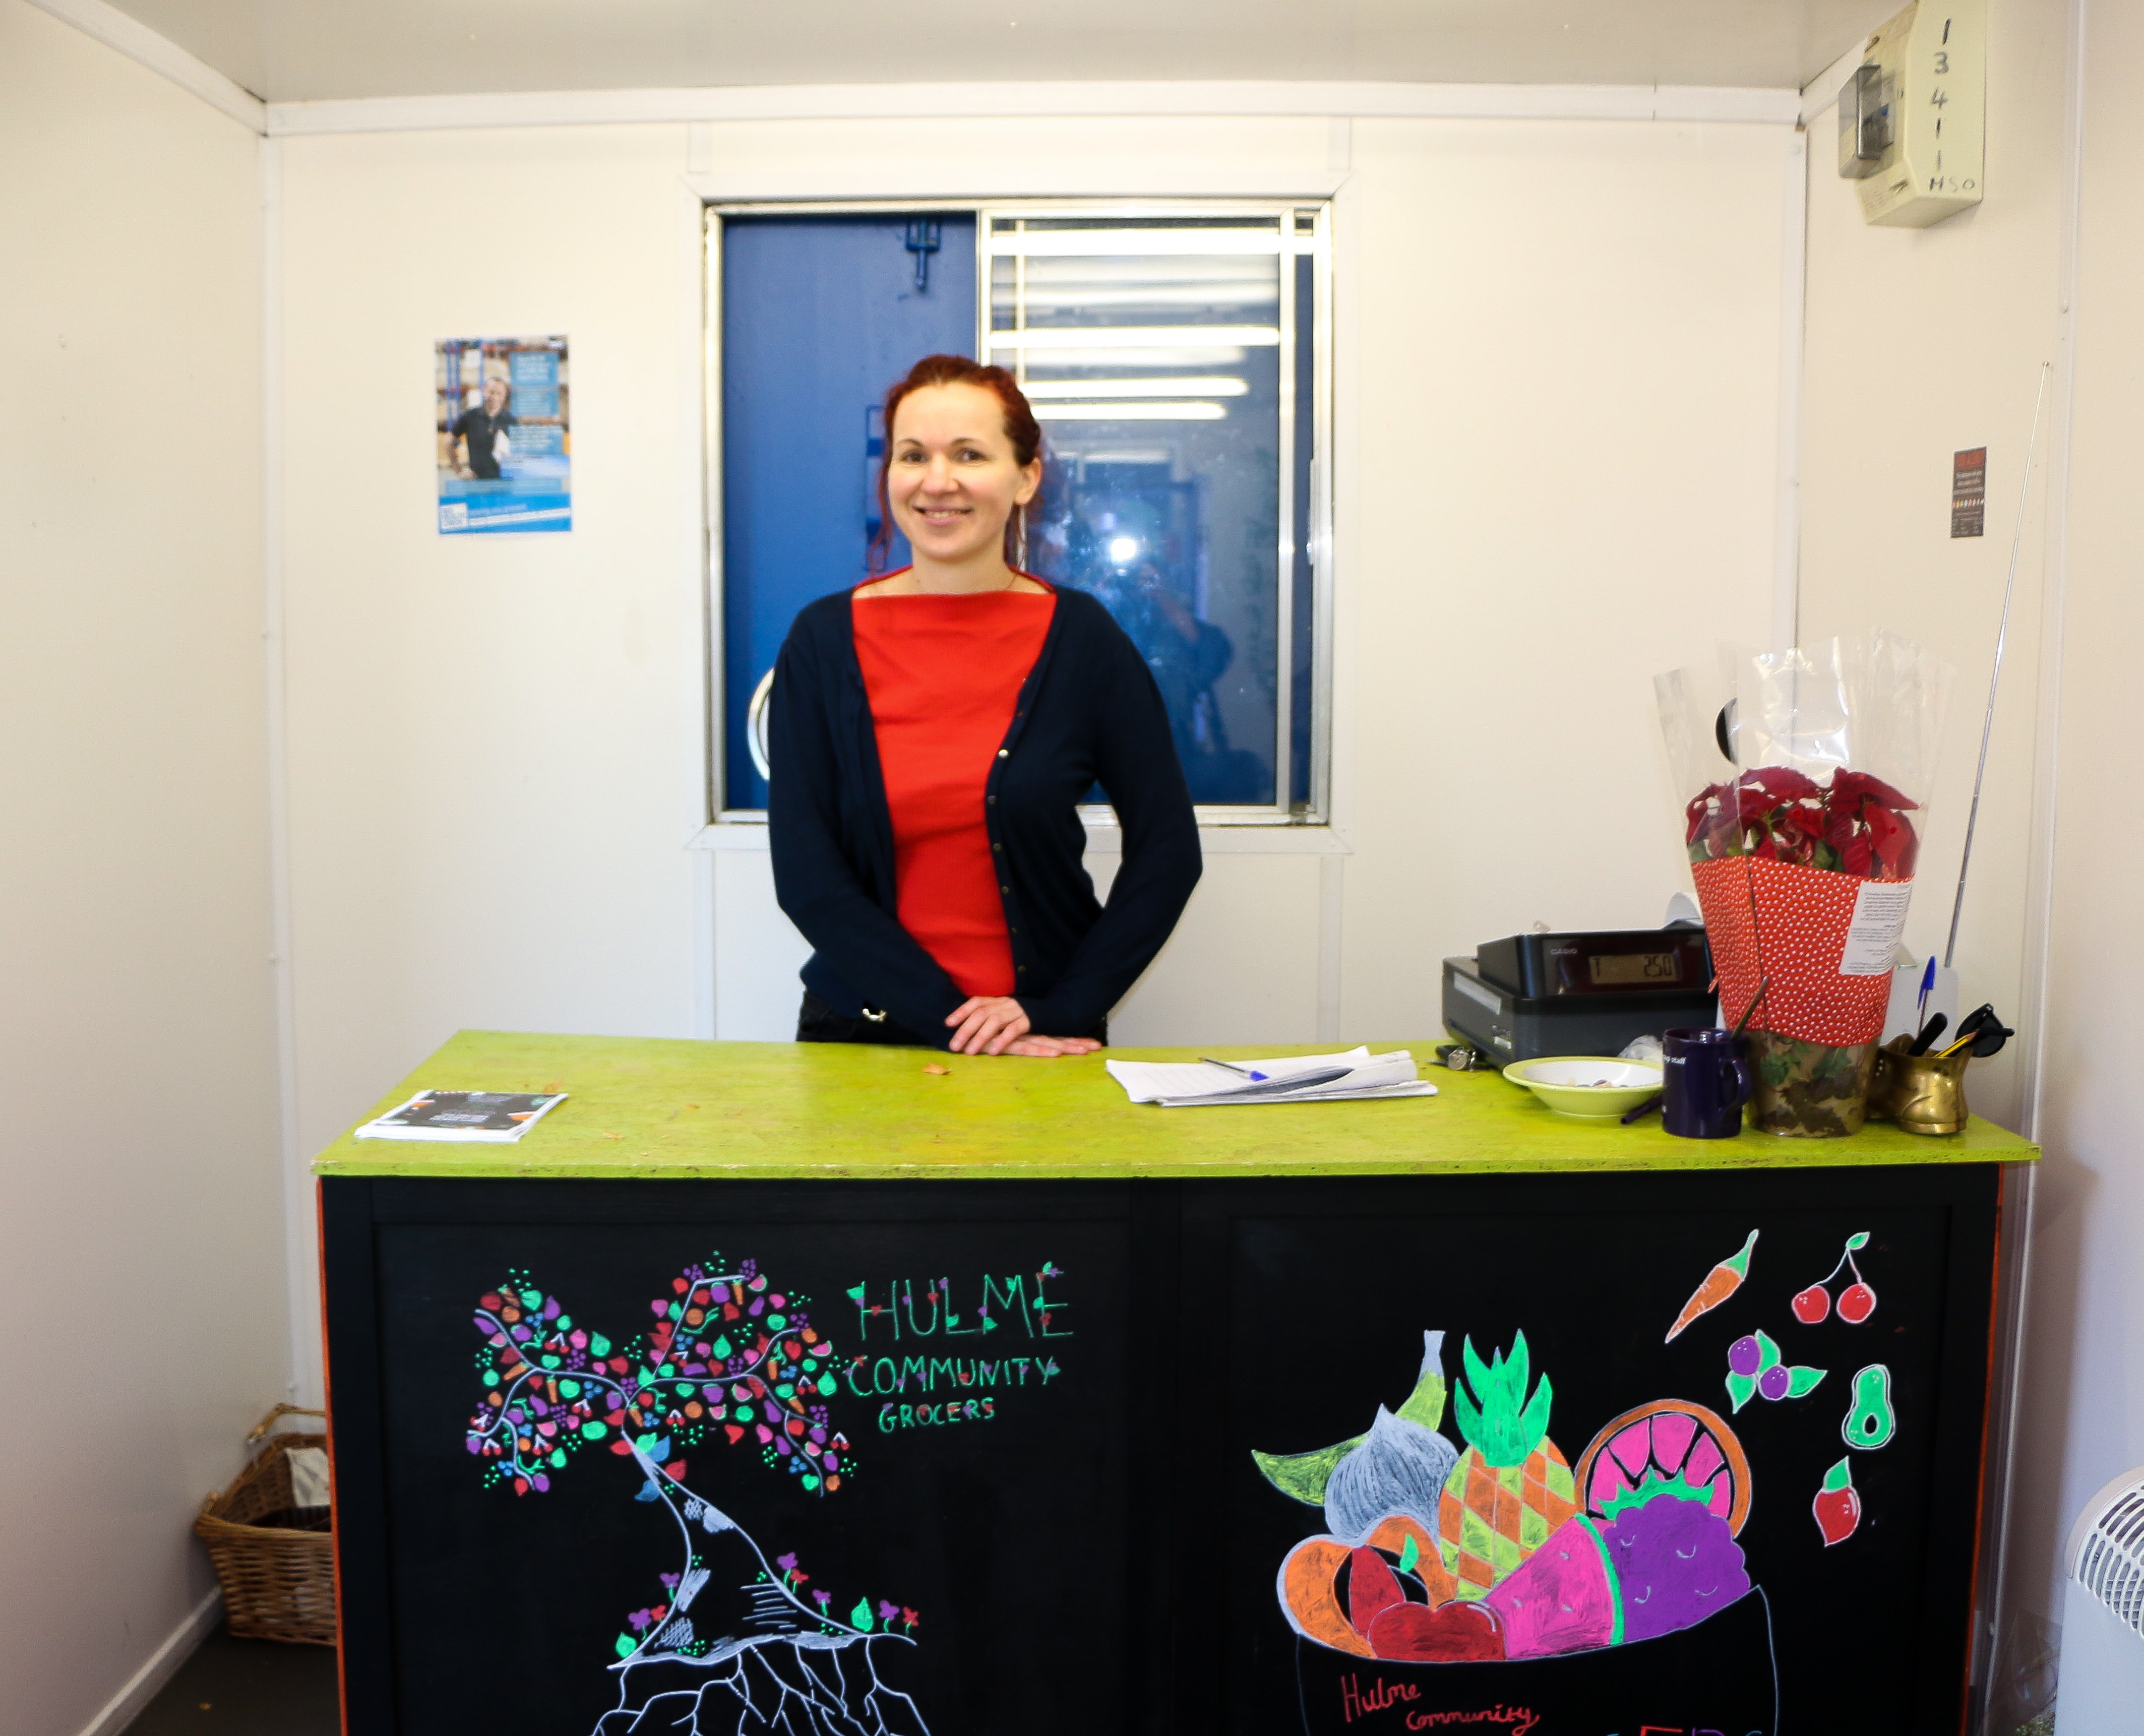 Hulme Community grocer project coordinator